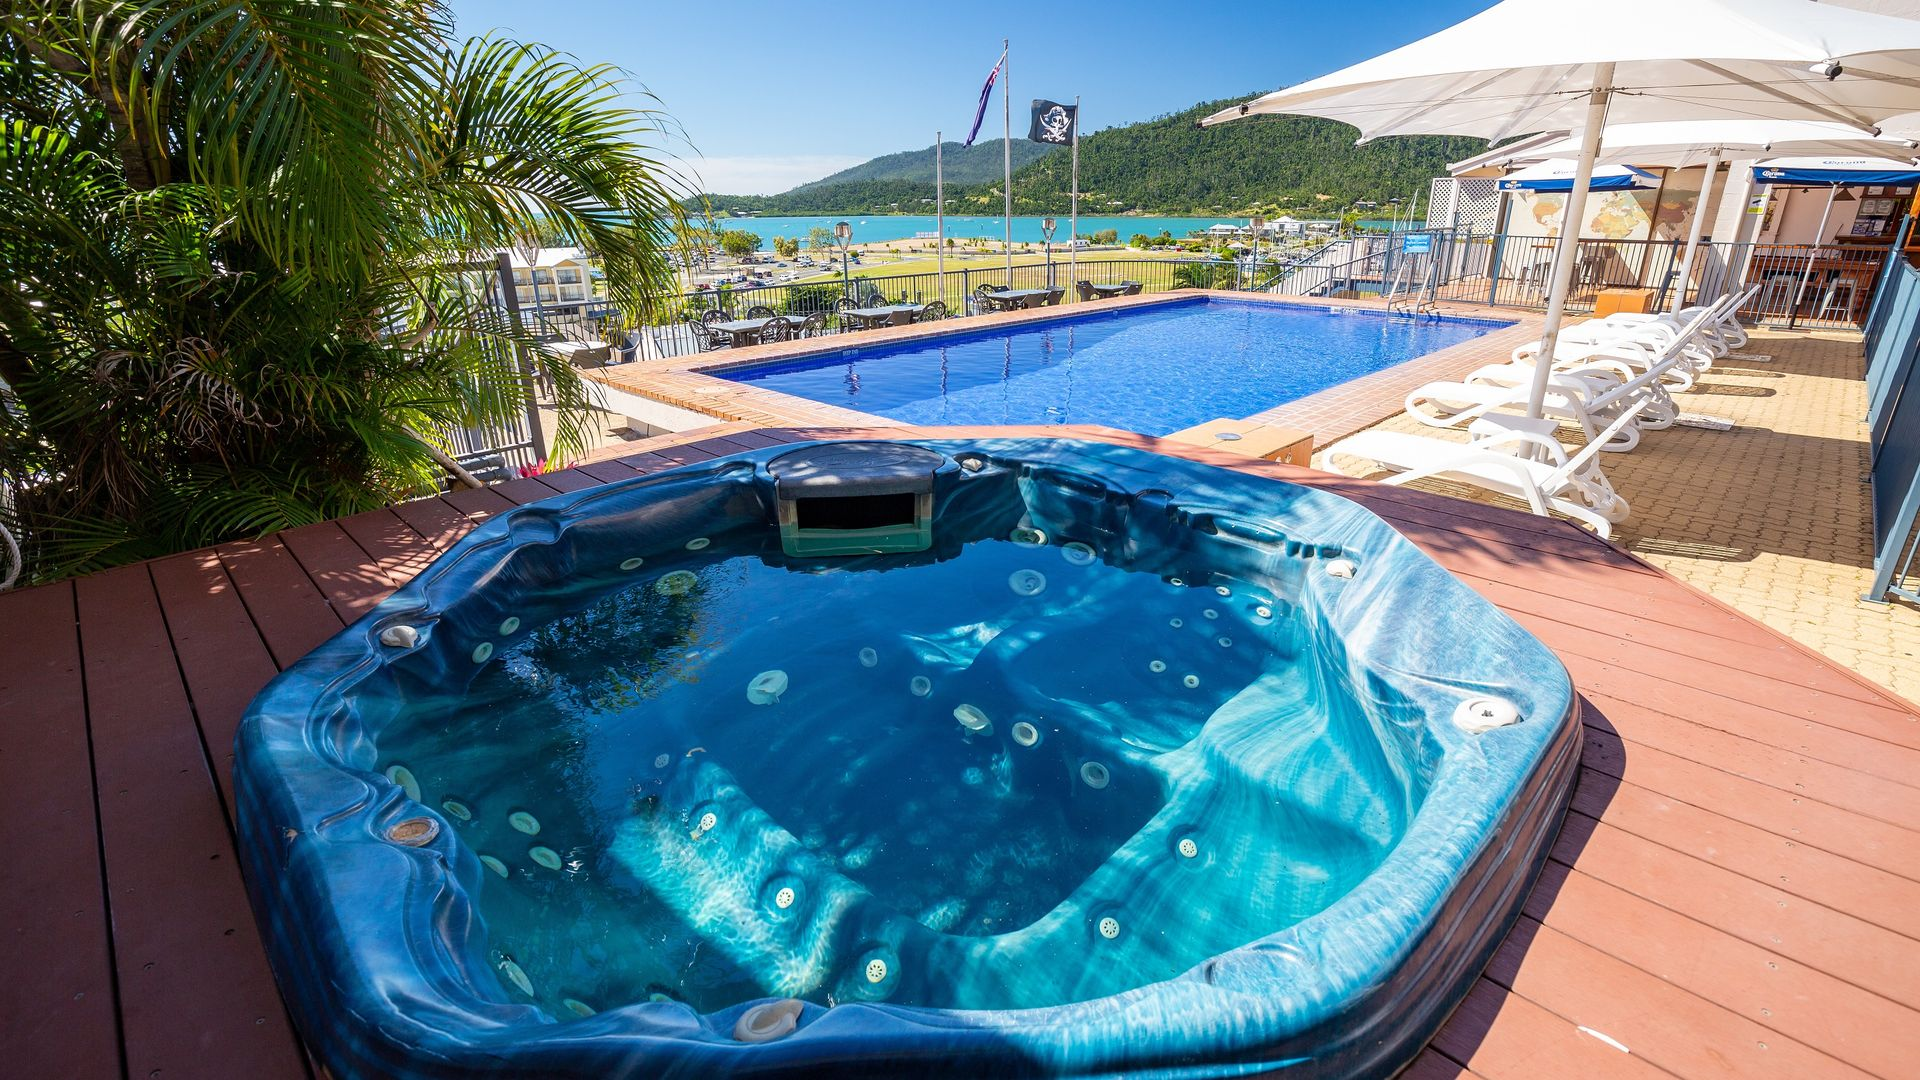 7 & 7A/5 Golden Orchid Drive, Airlie Beach QLD 4802, Image 1